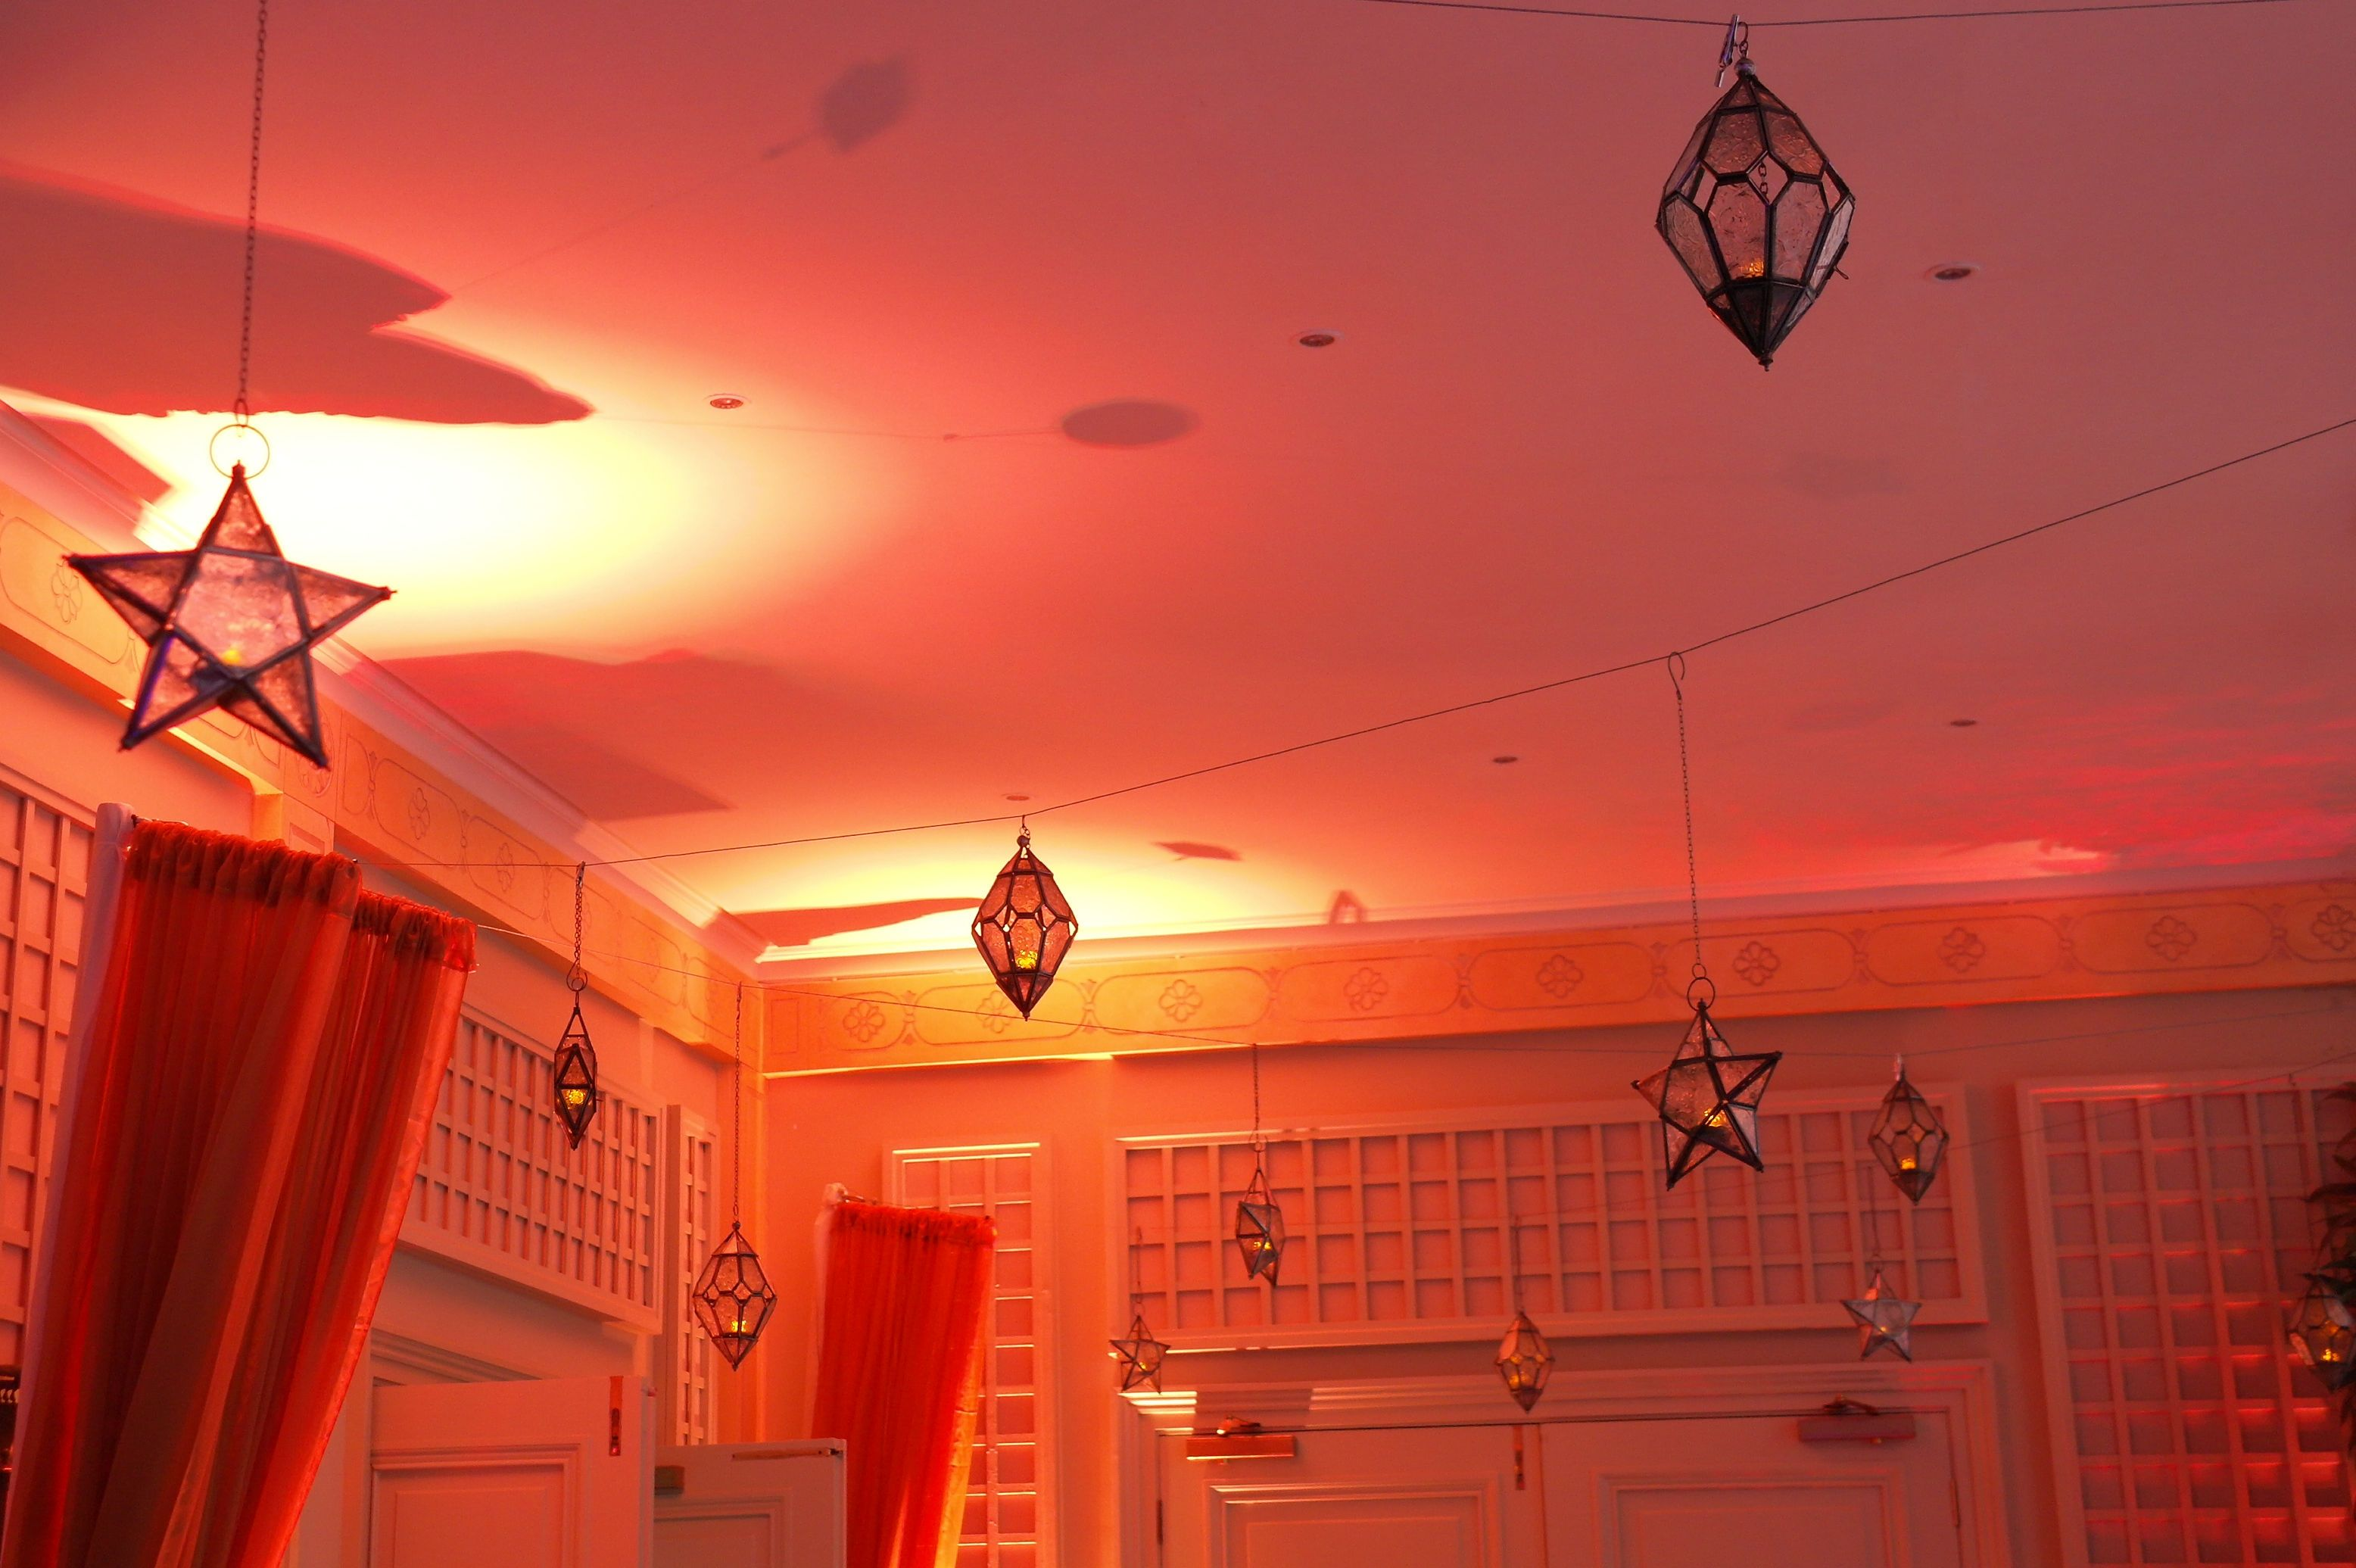 ceiling well designed your that events atmosphere linens to elegance not how the and ceilingdrape will room but s all can drapes drama of royalty transform a any positively adds for hang drape venue